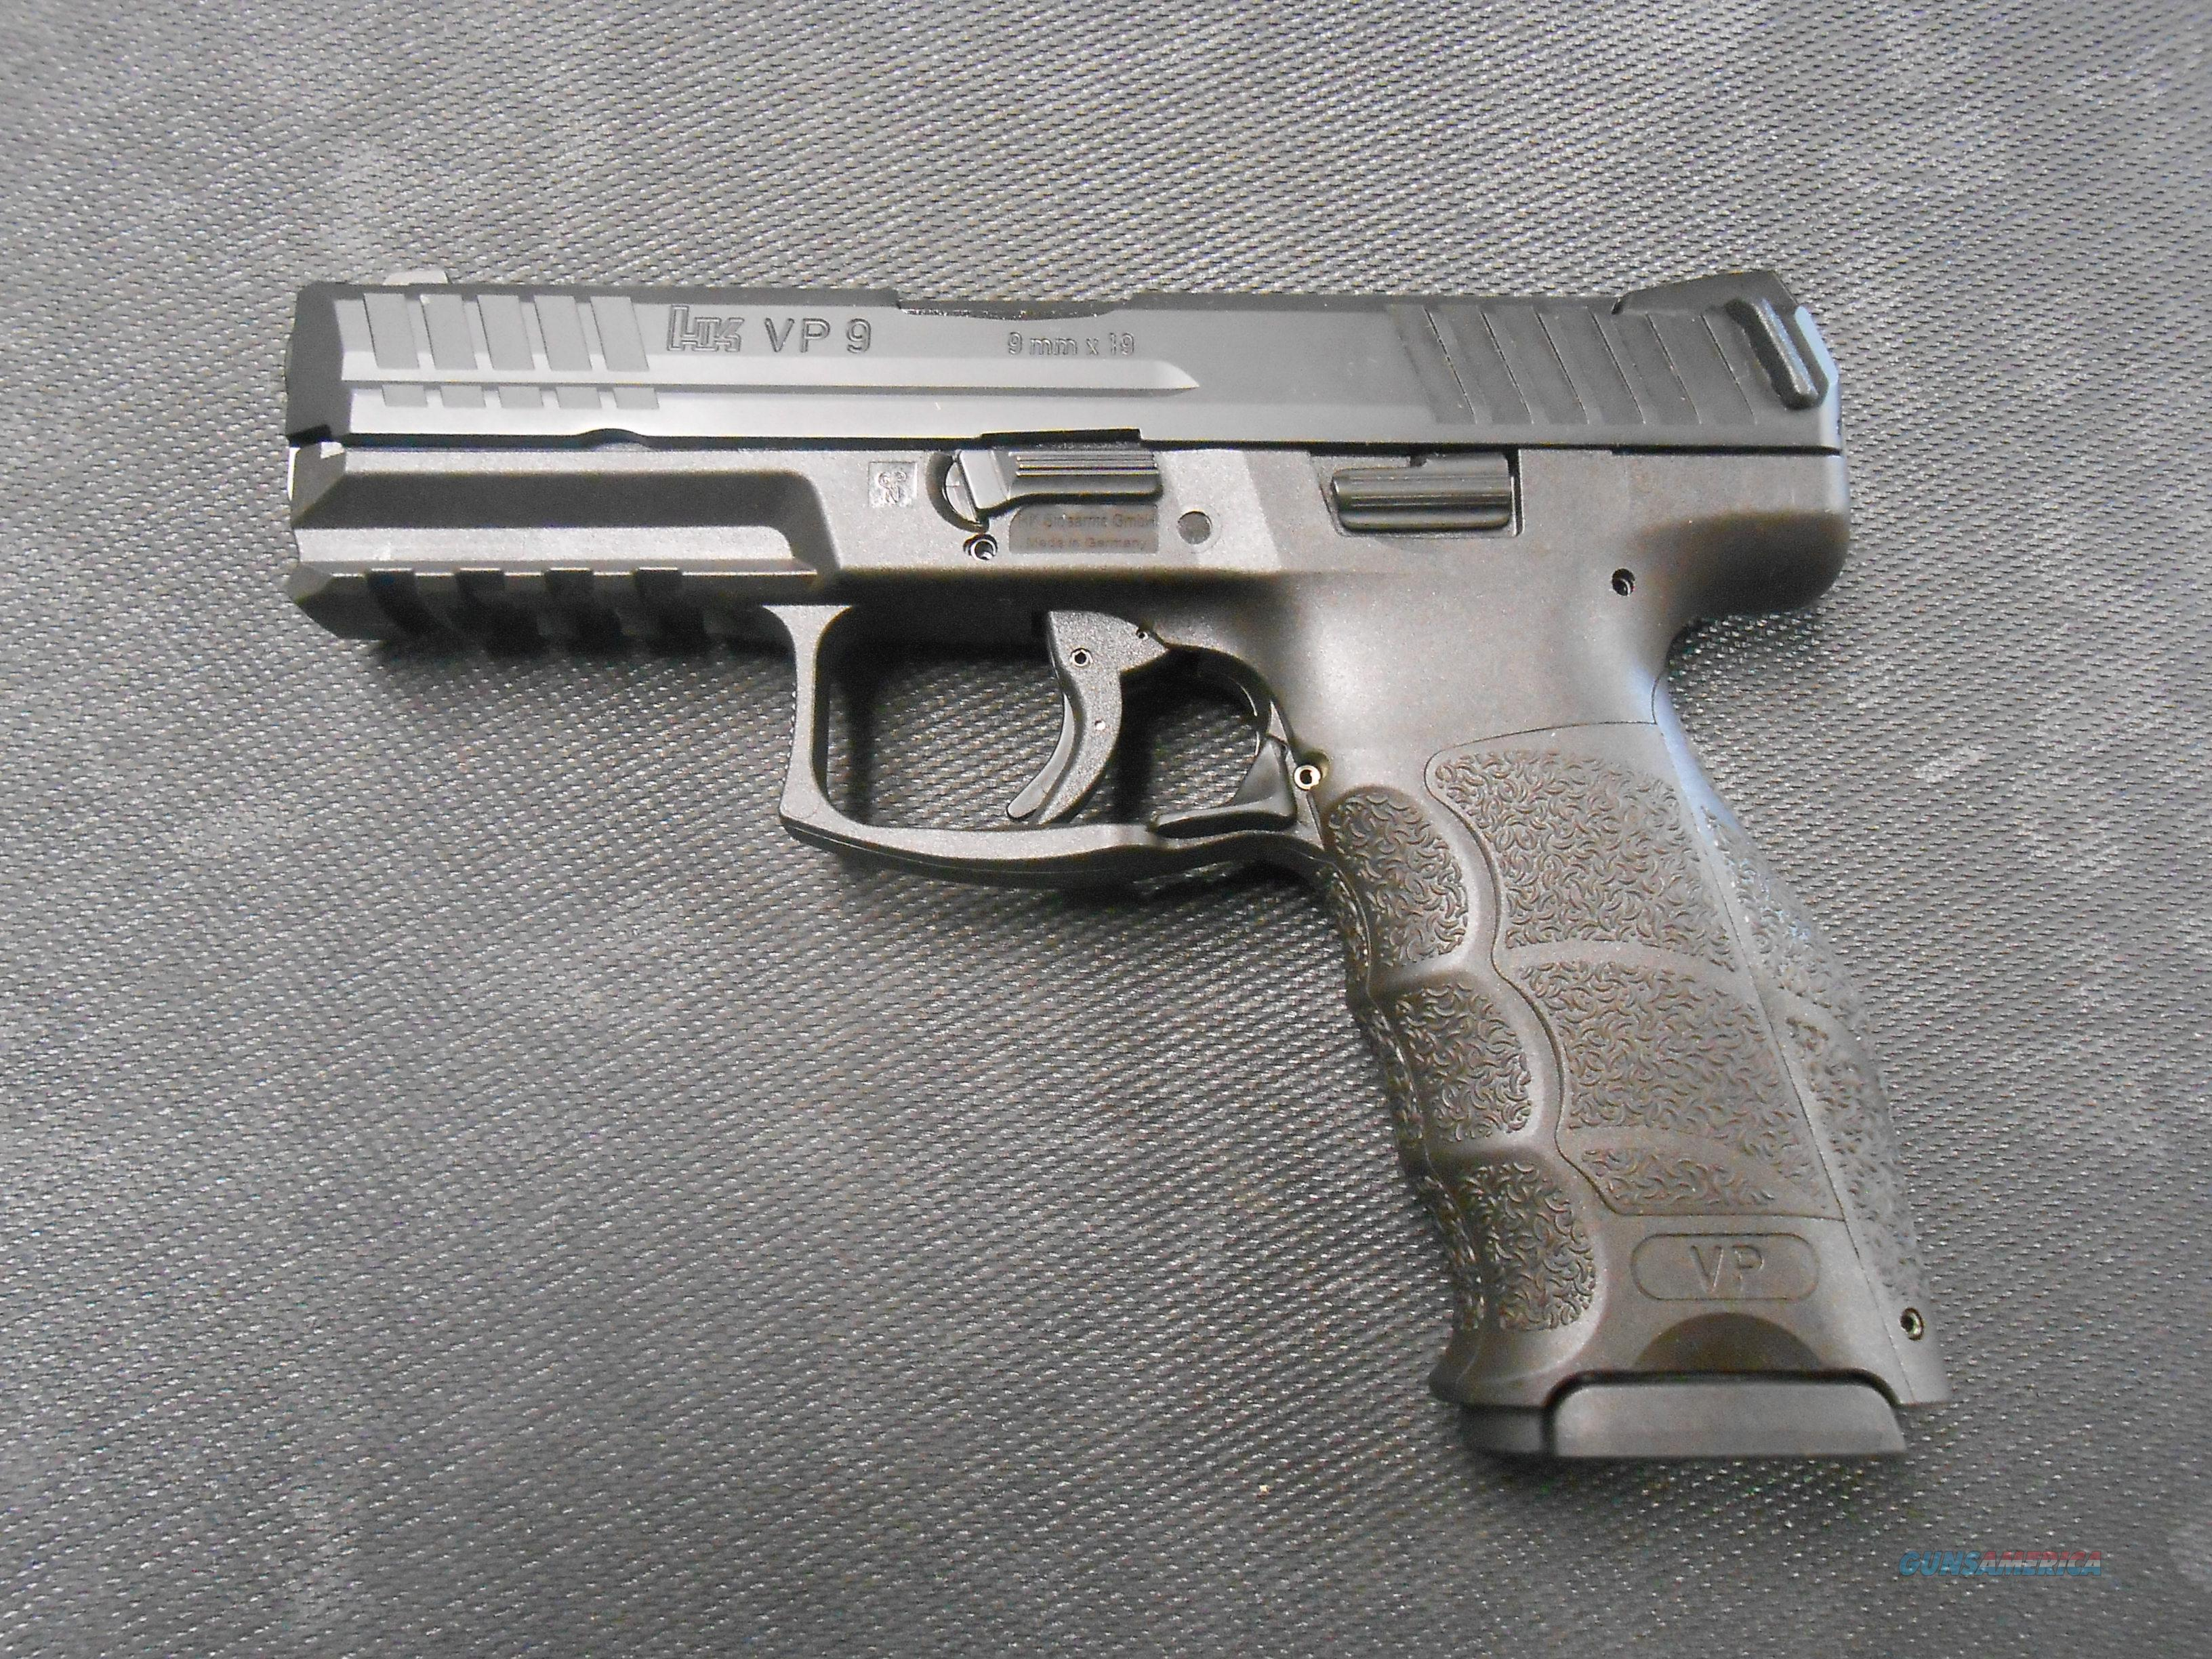 Fotos for sale new hk vp9 le 9mm pistol with night sights and 3